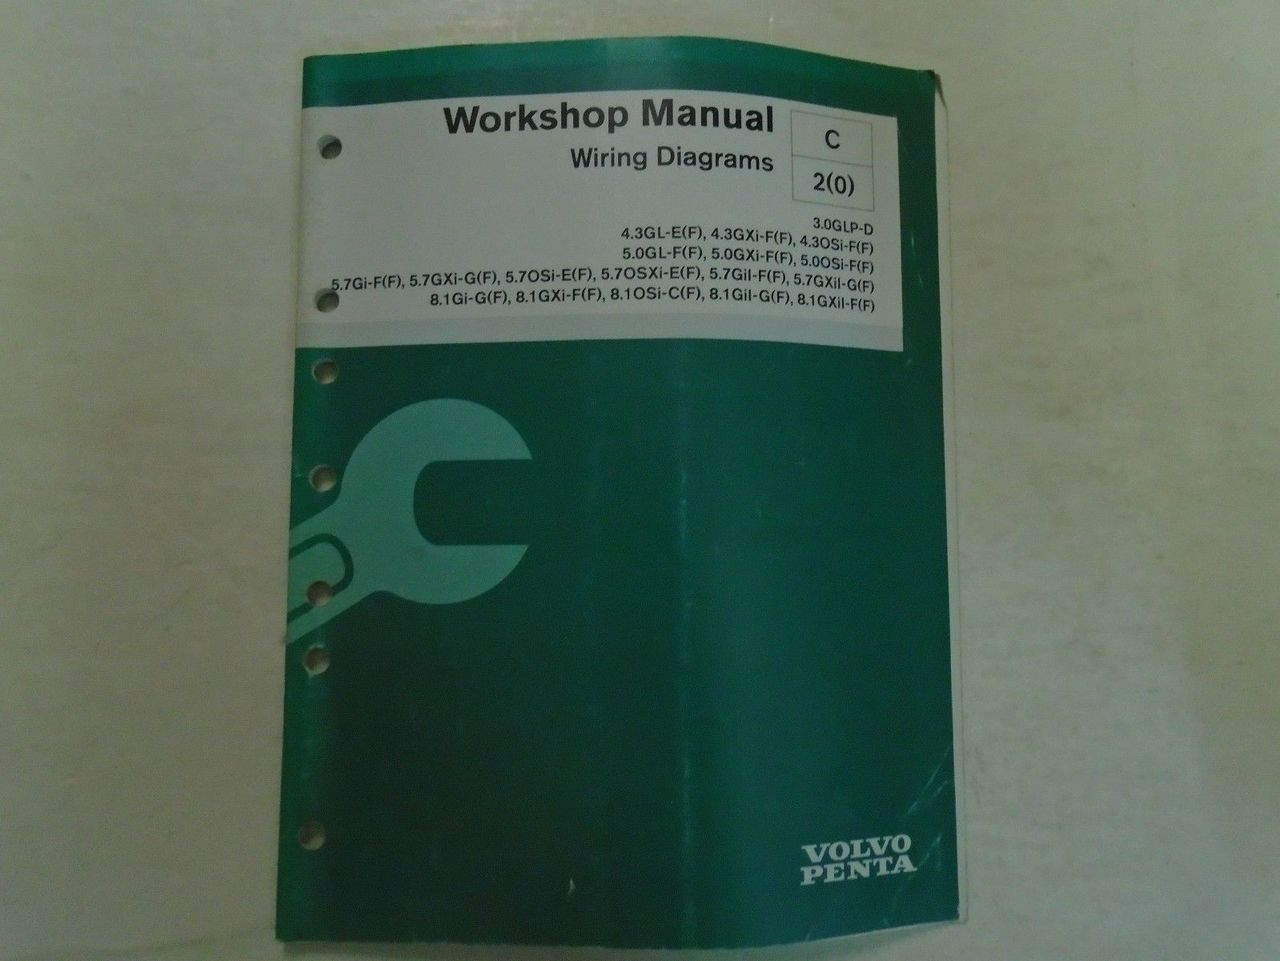 Volvo Penta Workshop Manual Wiring Diagrams C2 0  7745609 11-2005 Boat Oem